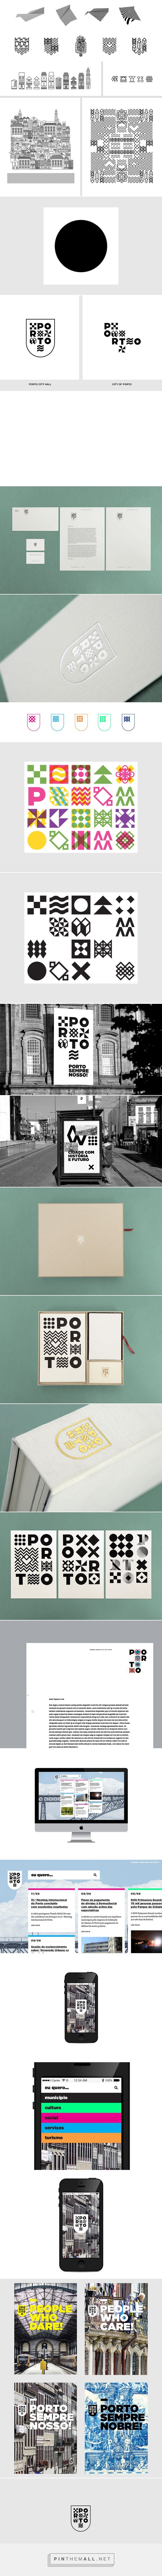 Porto / City Identity and Branding Proposal on Behance - https://www.behance.net/gallery/19950165/Porto-City-Identity-and-Branding-Proposal